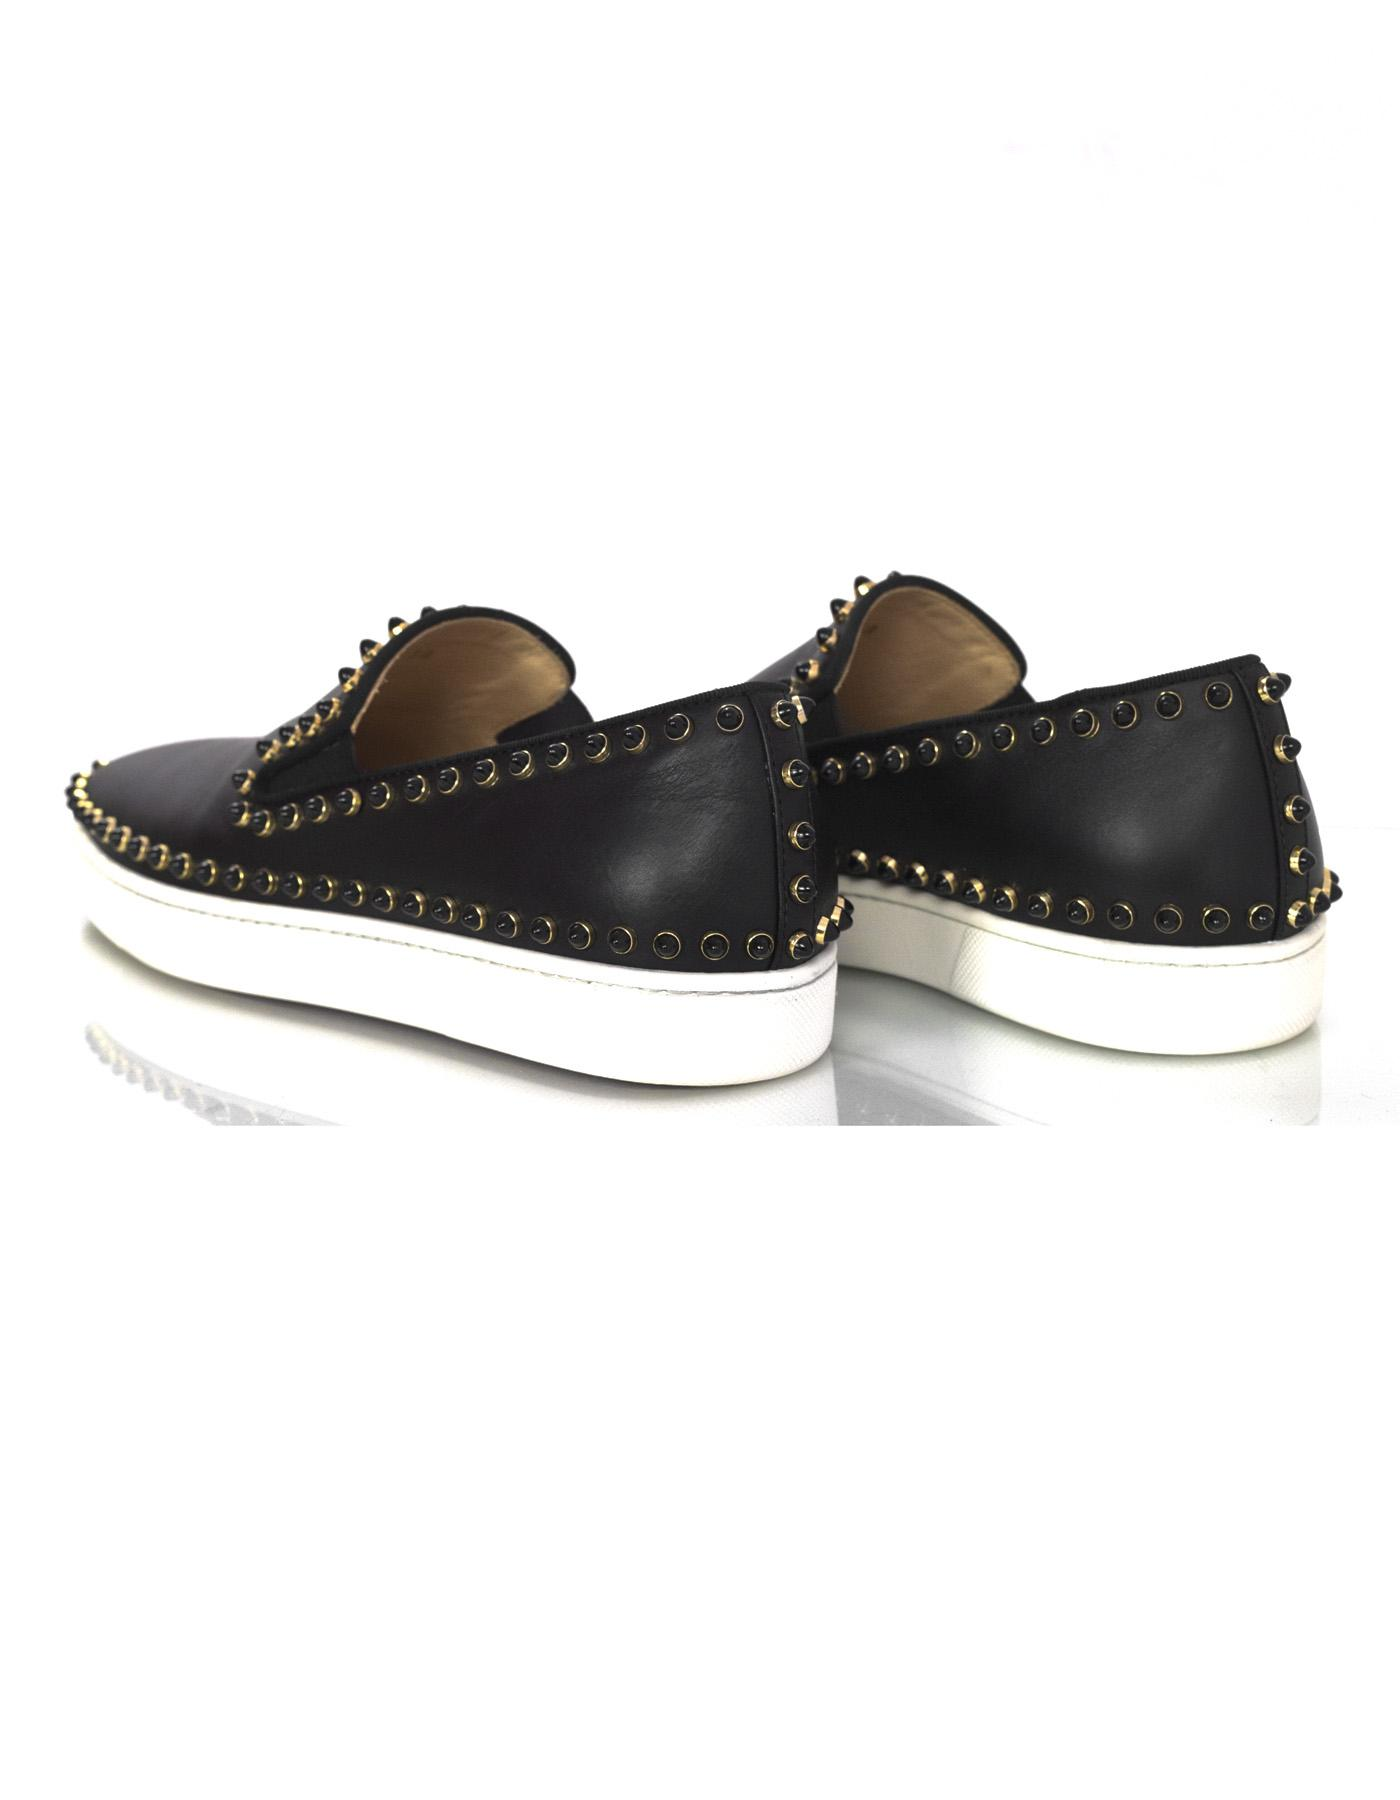 2fe14521a71b ... cheapest christian louboutin sneakers flats studded leather black  athletic. 12345678 ee87c 295b8